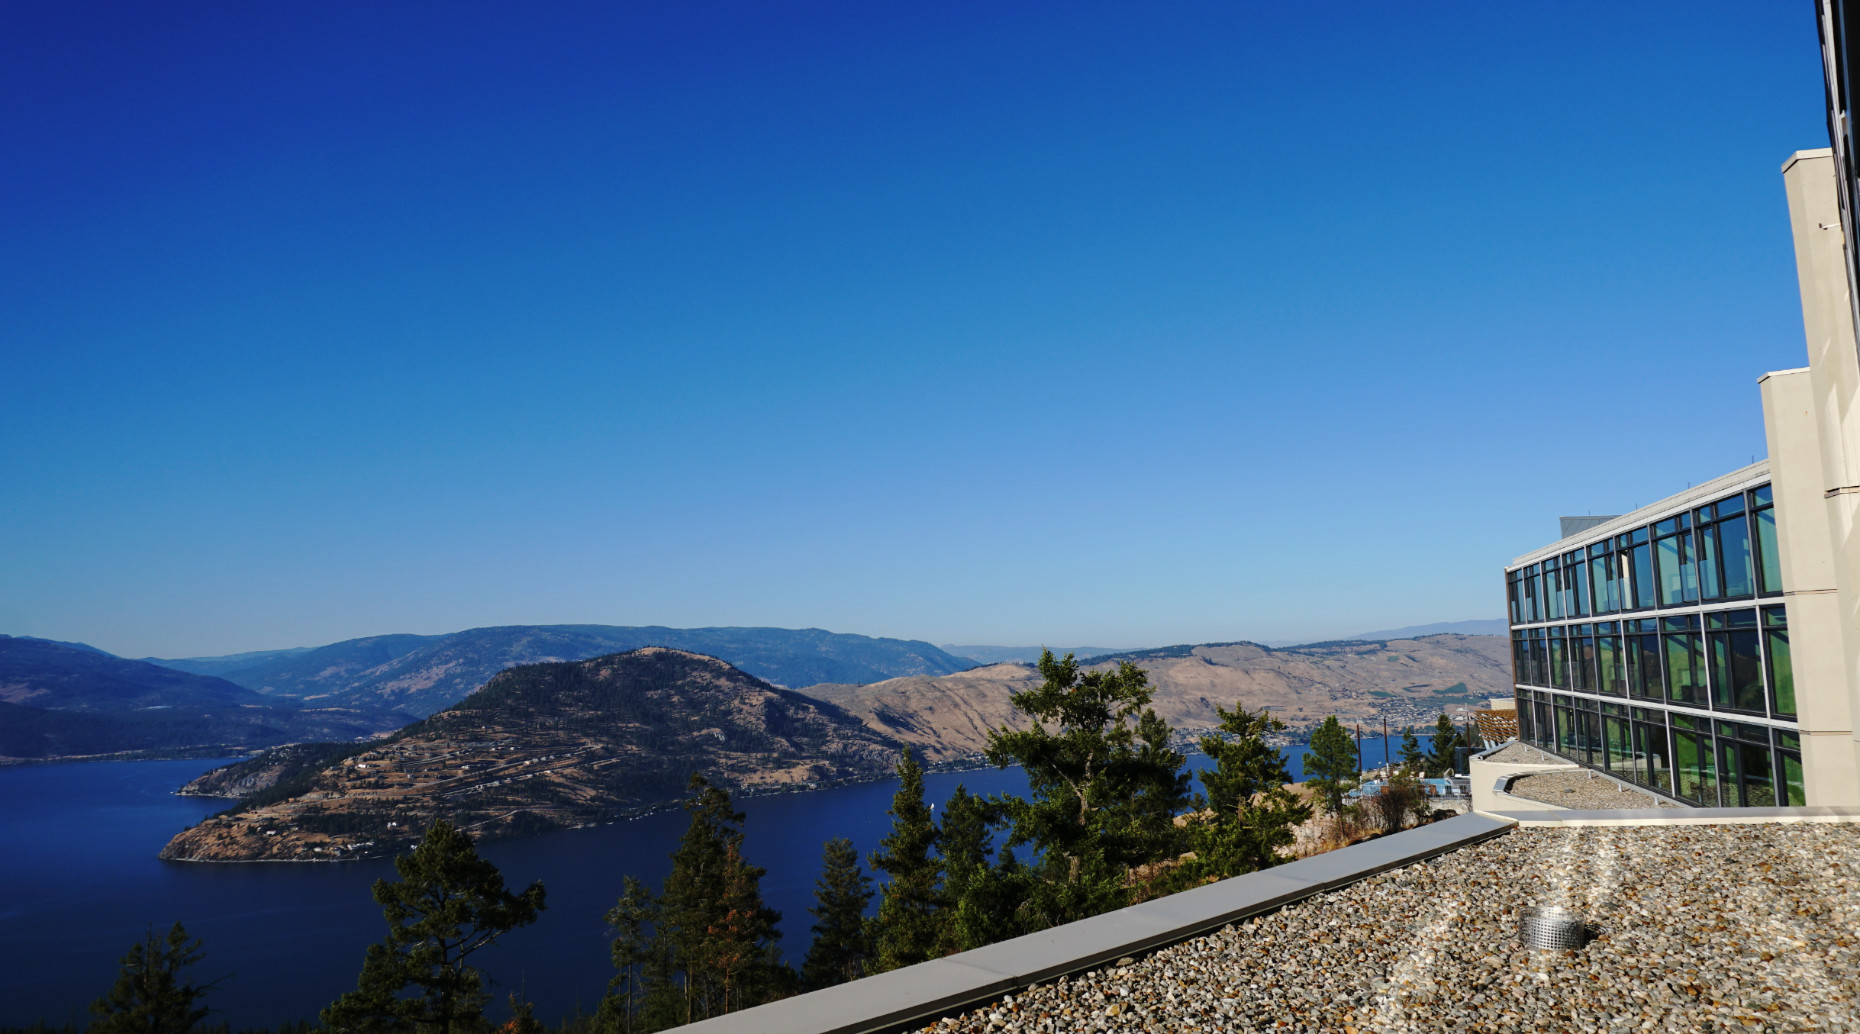 Sparkling Hill, Okanagan, Canada (Image: Lottie Gross)